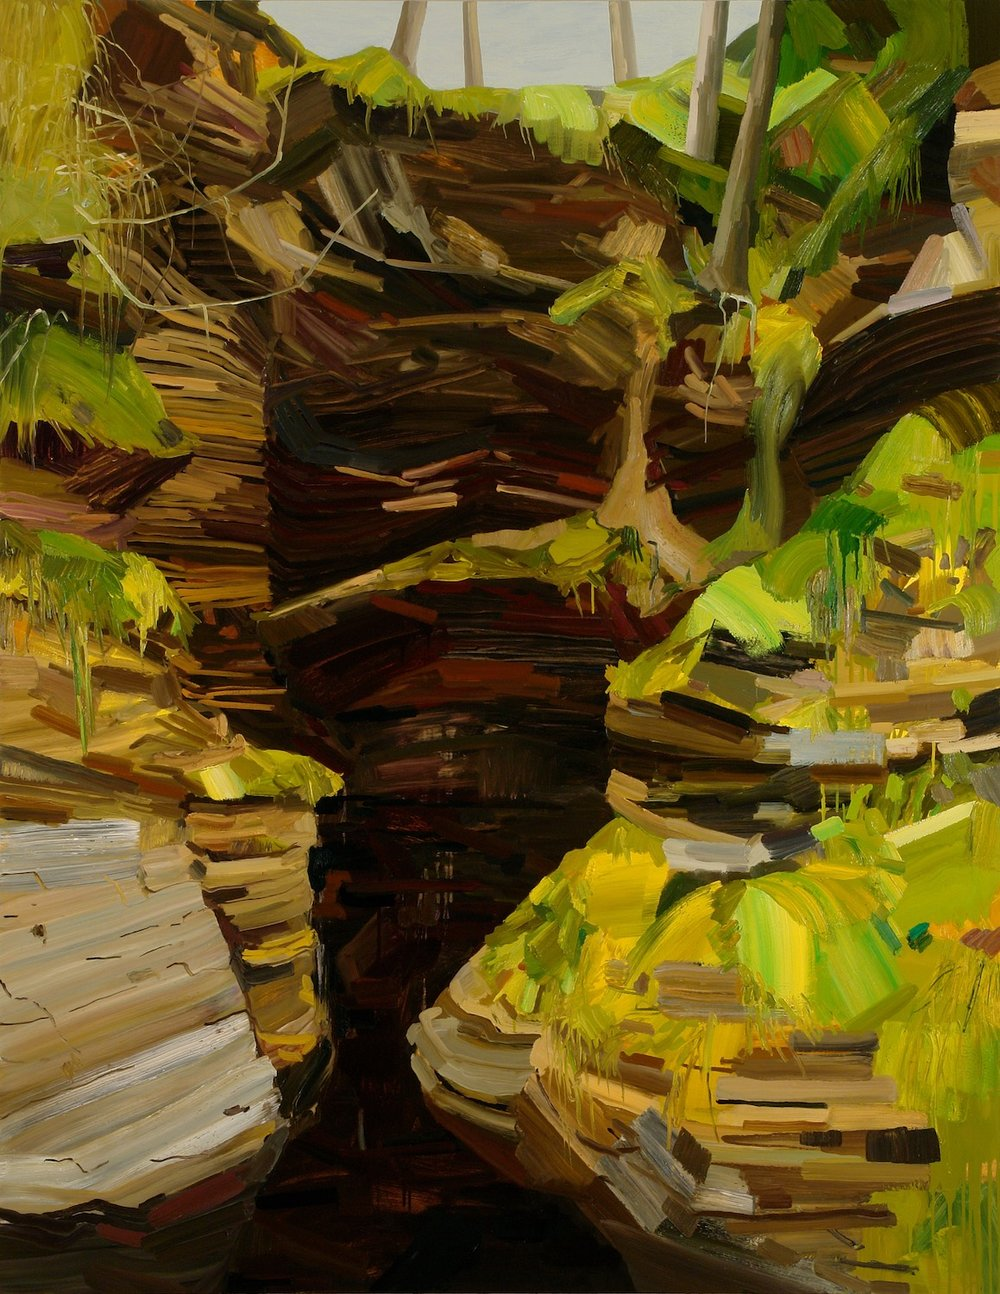 Crevice, 2008, Oil on canvas, 108 x 84""